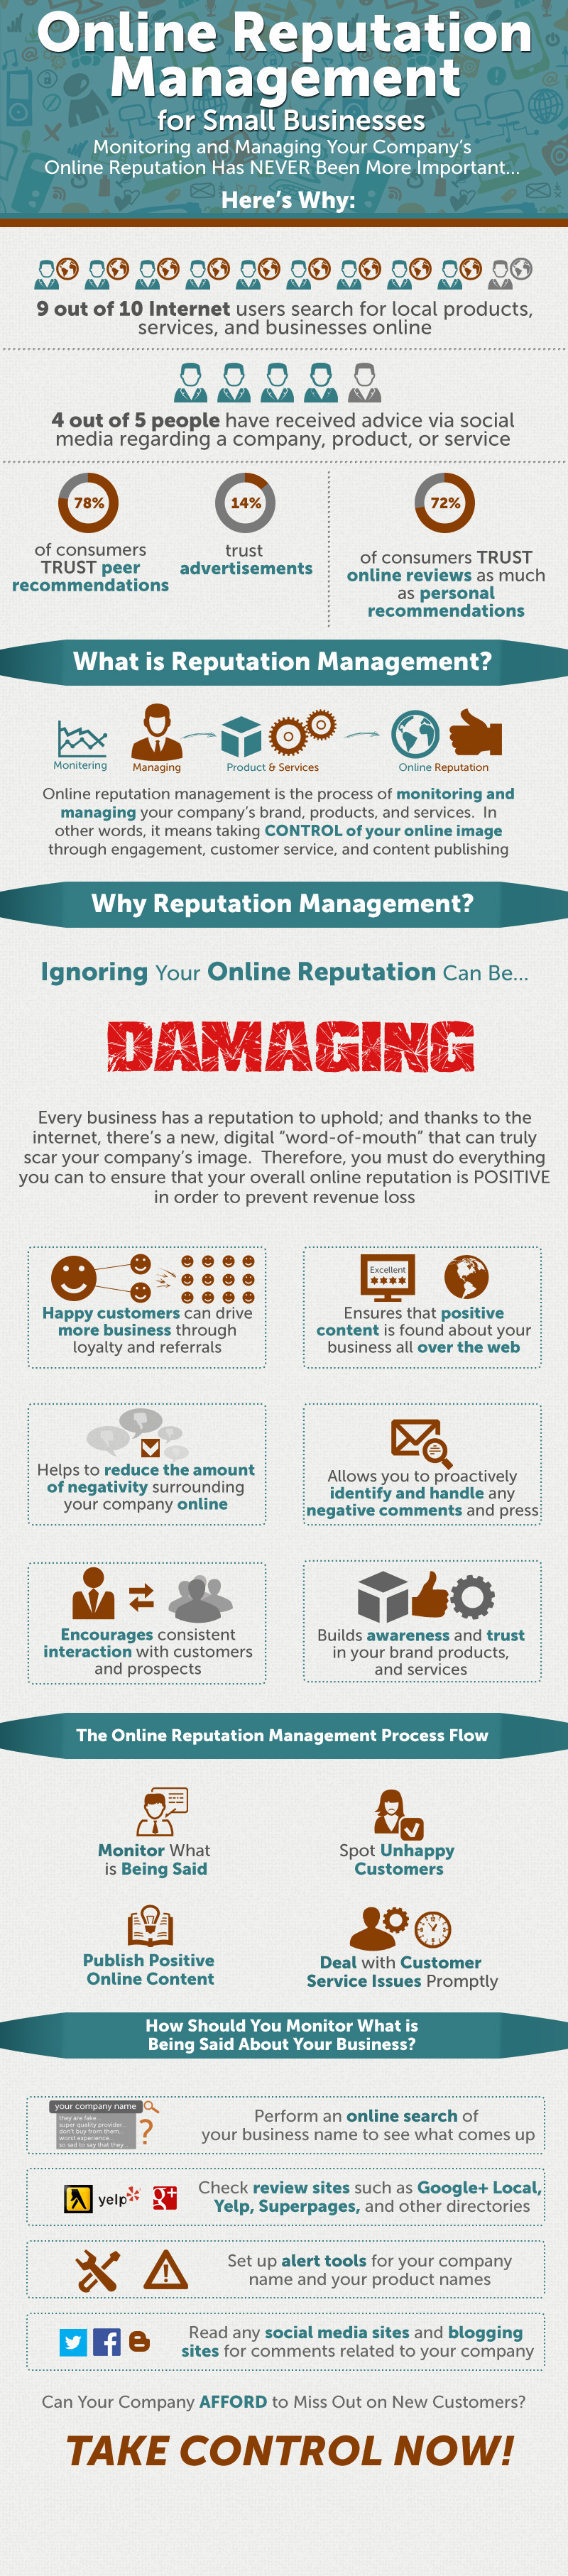 online-reputation-infographic